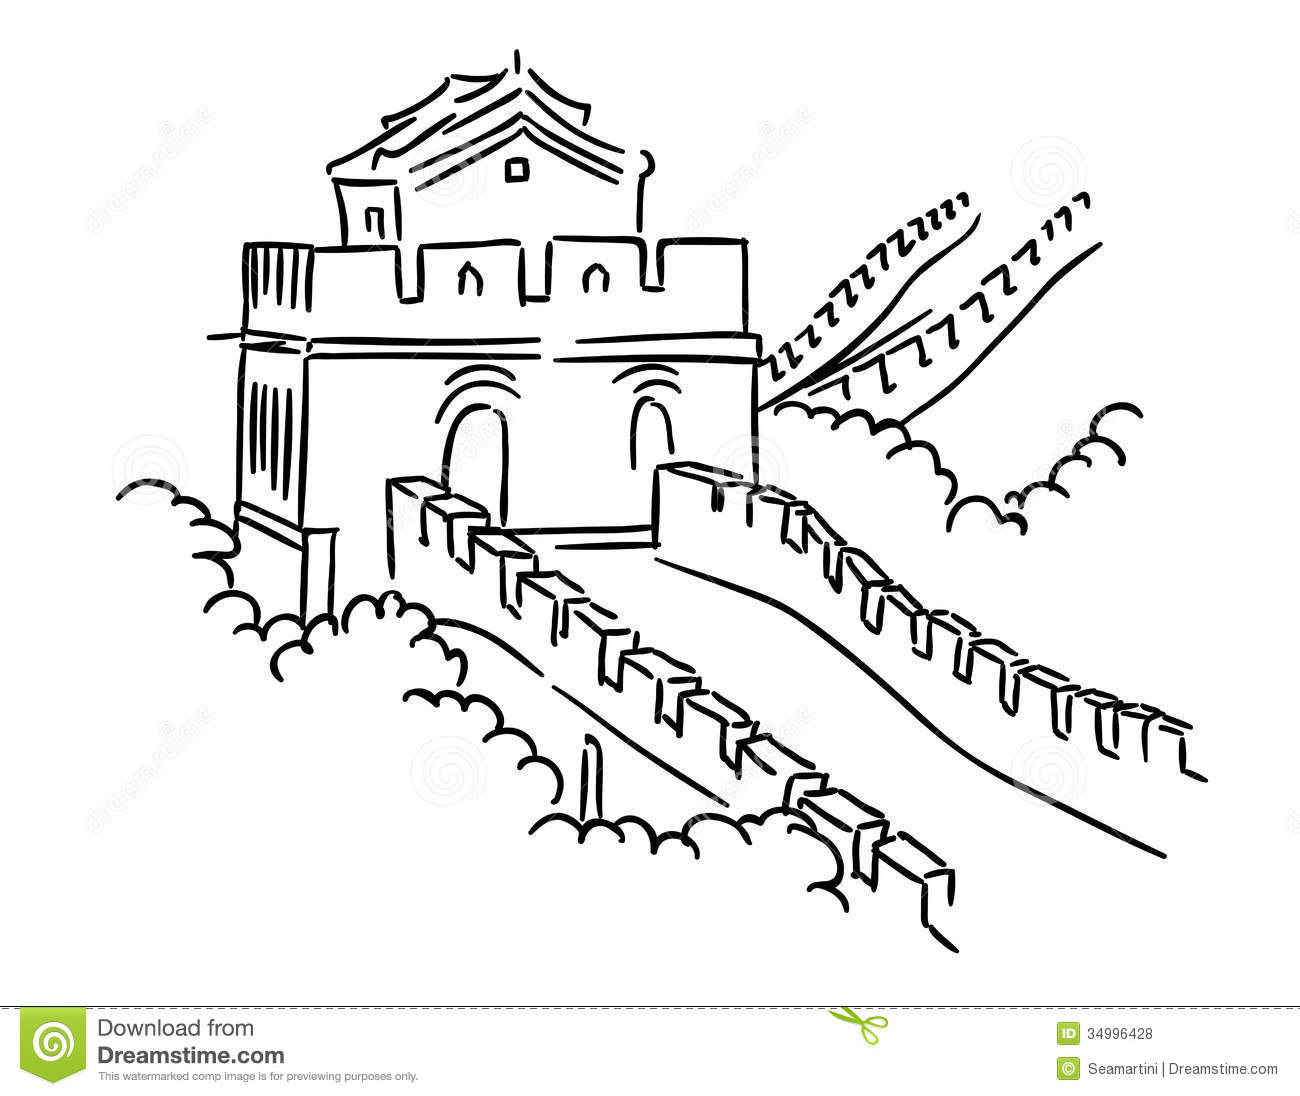 great wall of china printable coloring pages | Great Wall in China stock vector. Illustration of asian ...